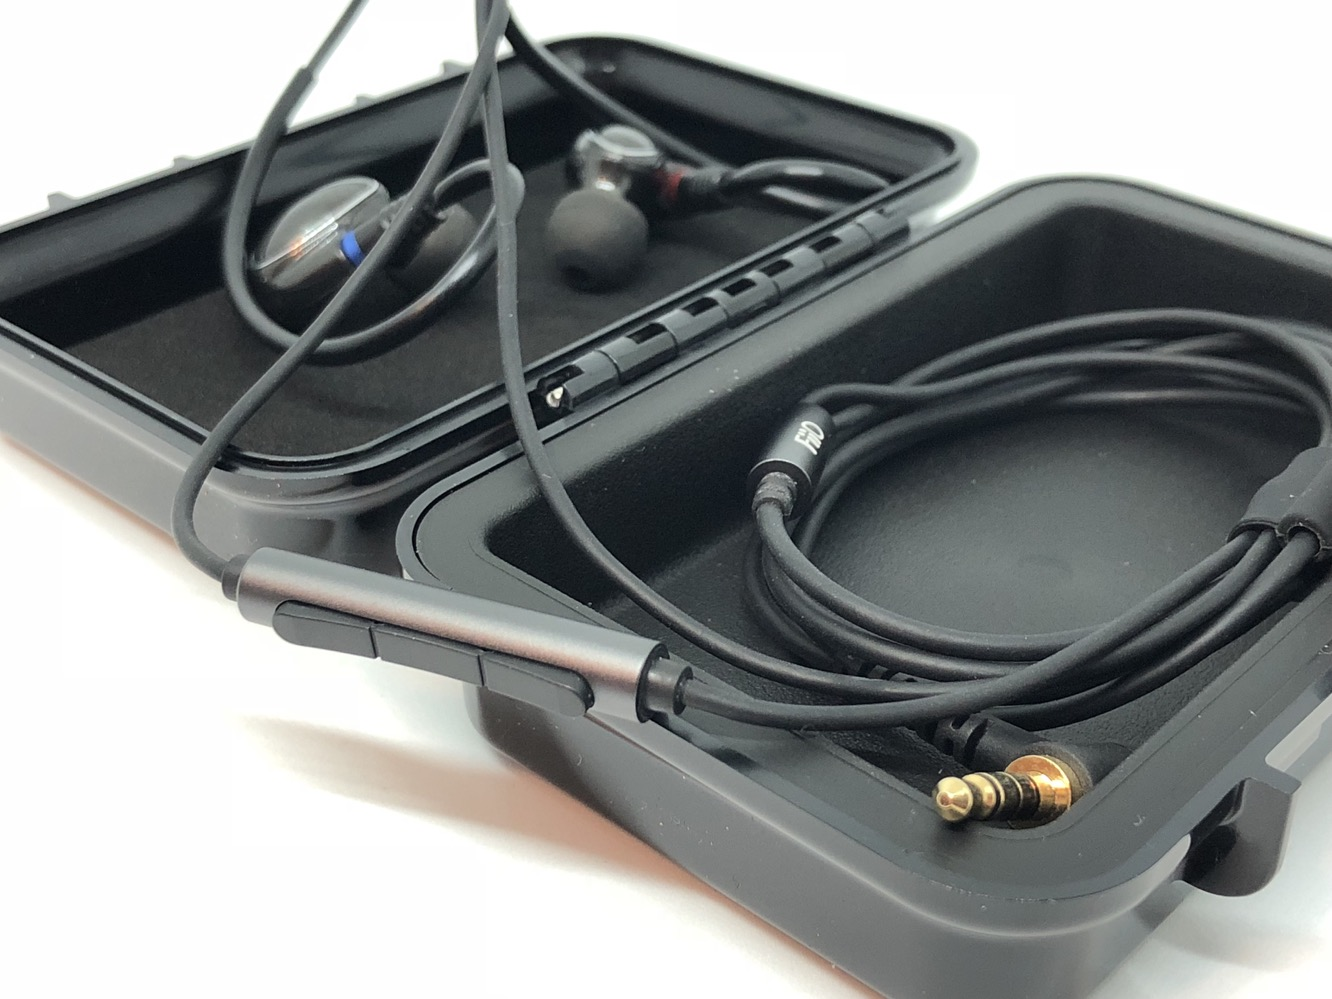 Review: Fiio FH1 In-Ear Headphones